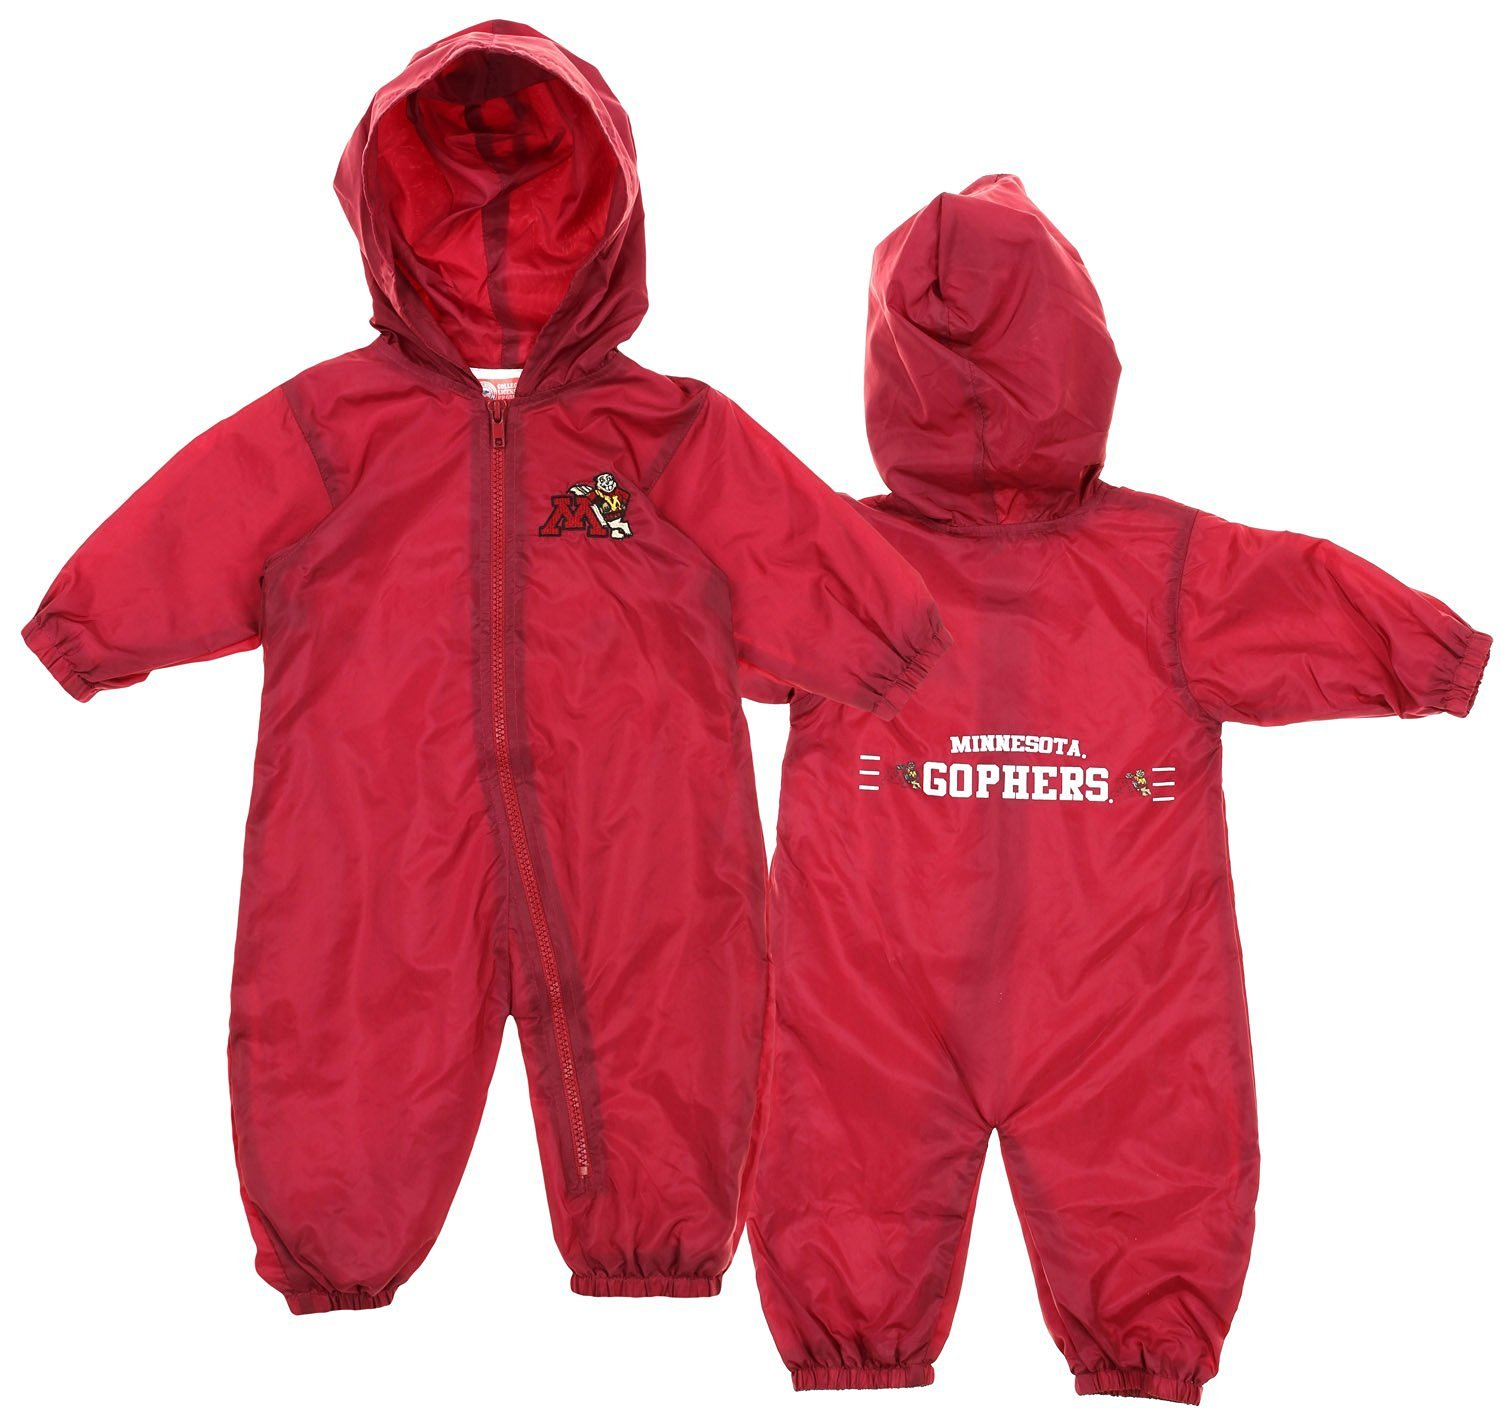 University of Minnesota Gophers Baby and Toddler Snap Hooded Jacket